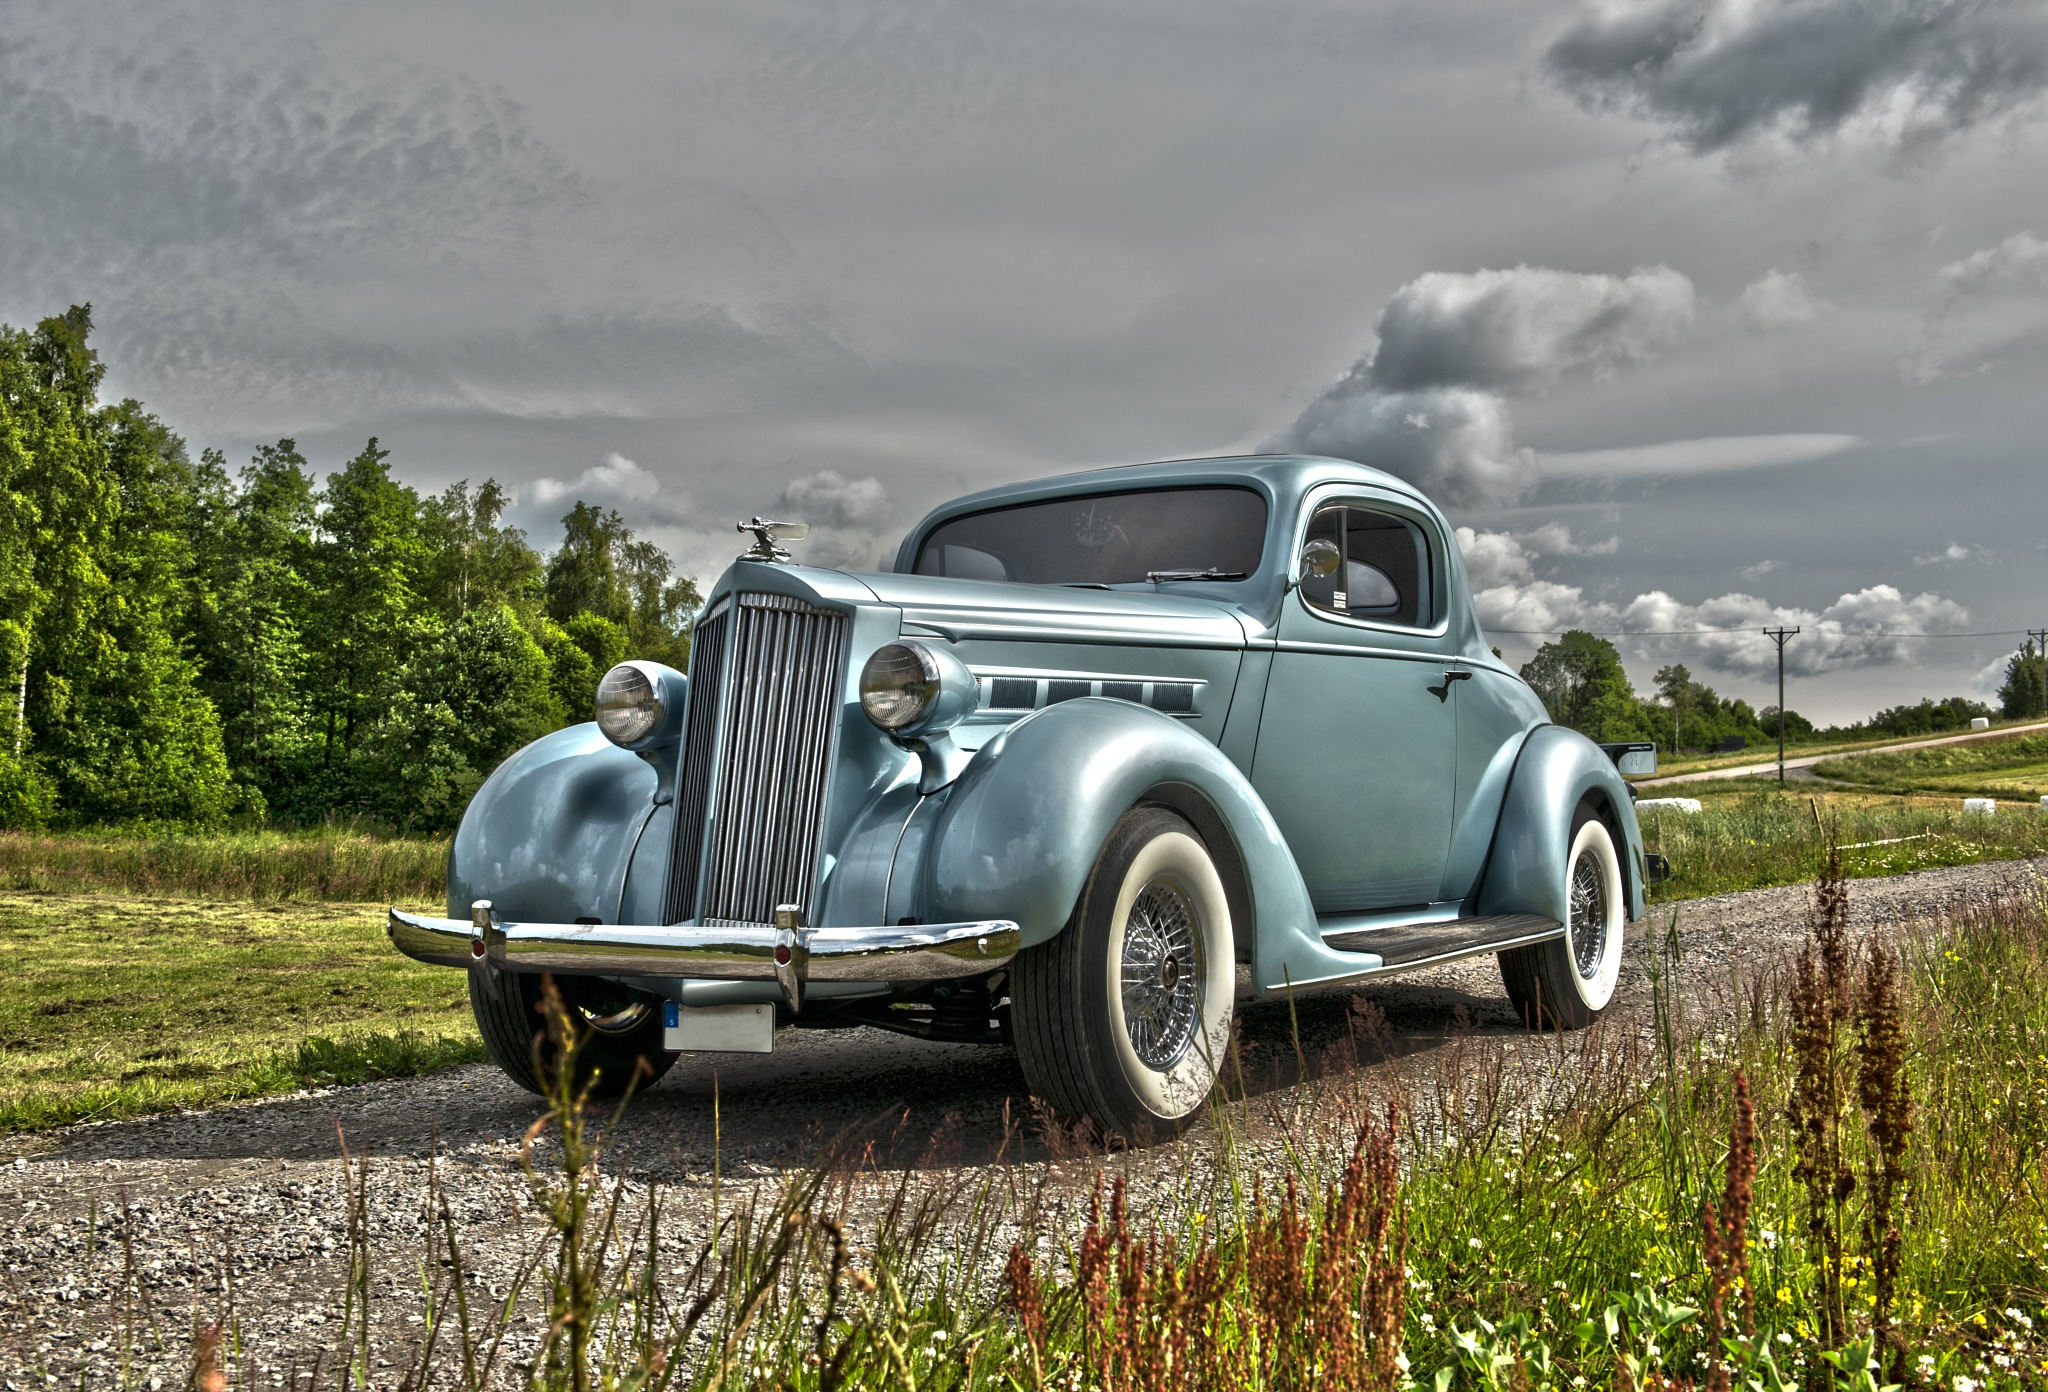 1937 Packard by Linda Persson